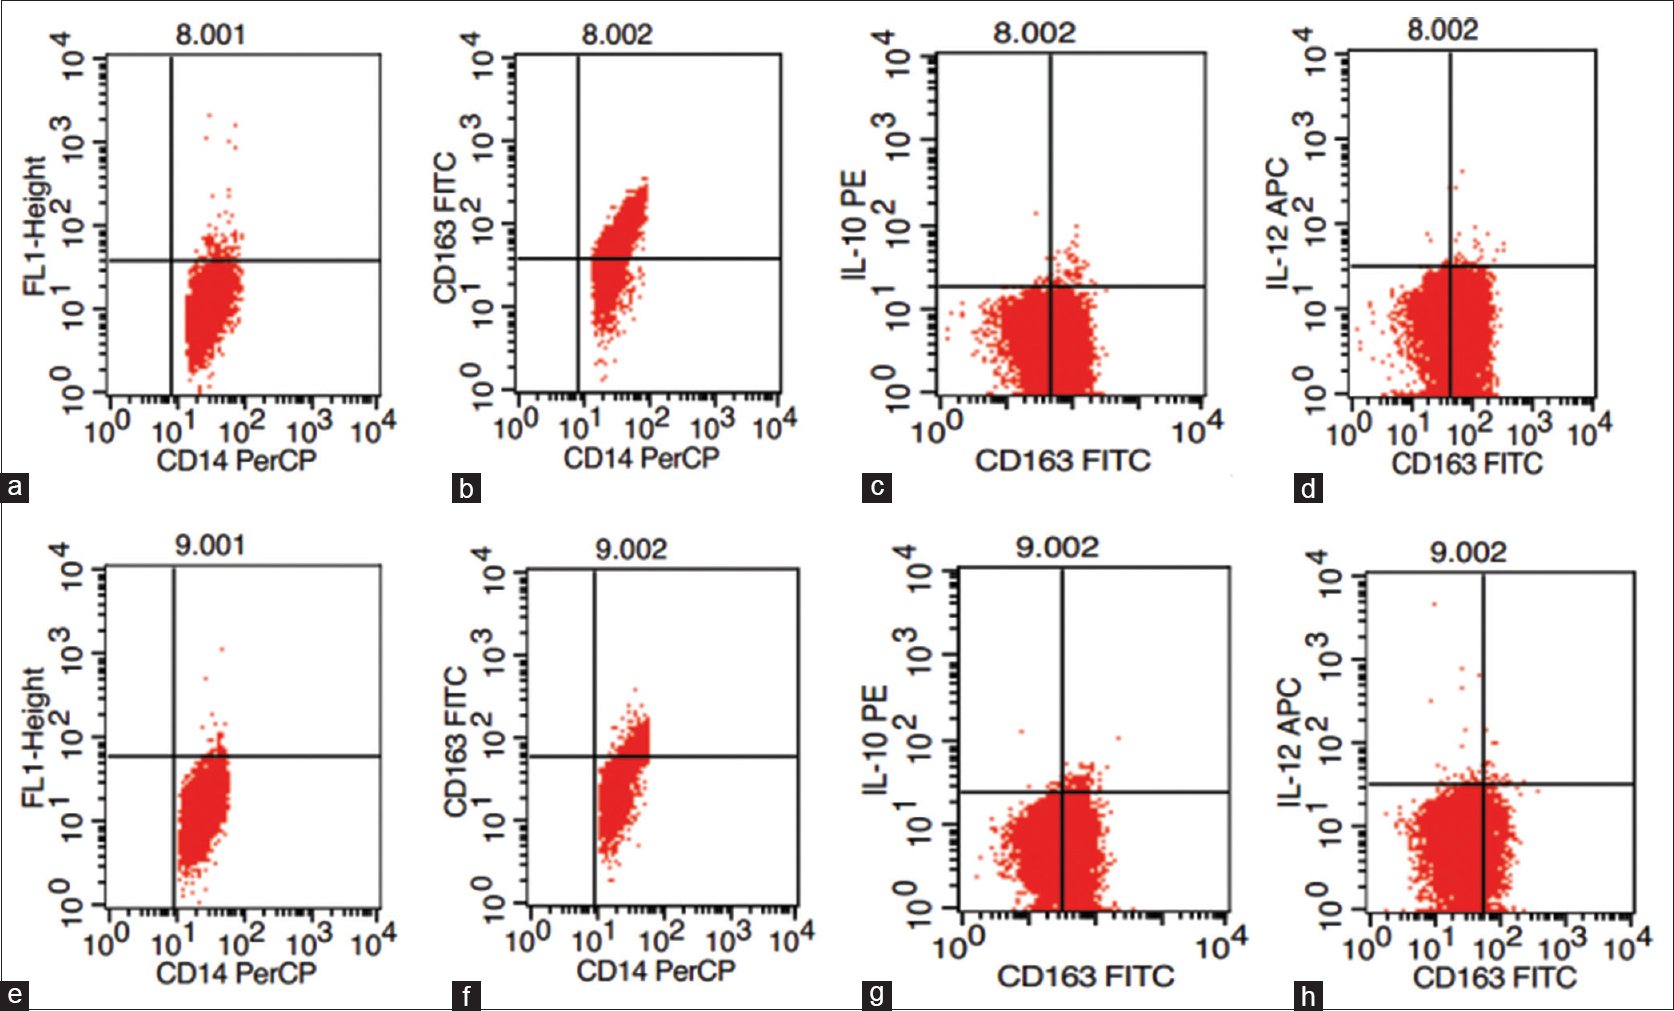 Figure 3: Determination of monocyte function in different group (CD14+CD163+IL-10+, CD14+CD163-IL-12+ expression)